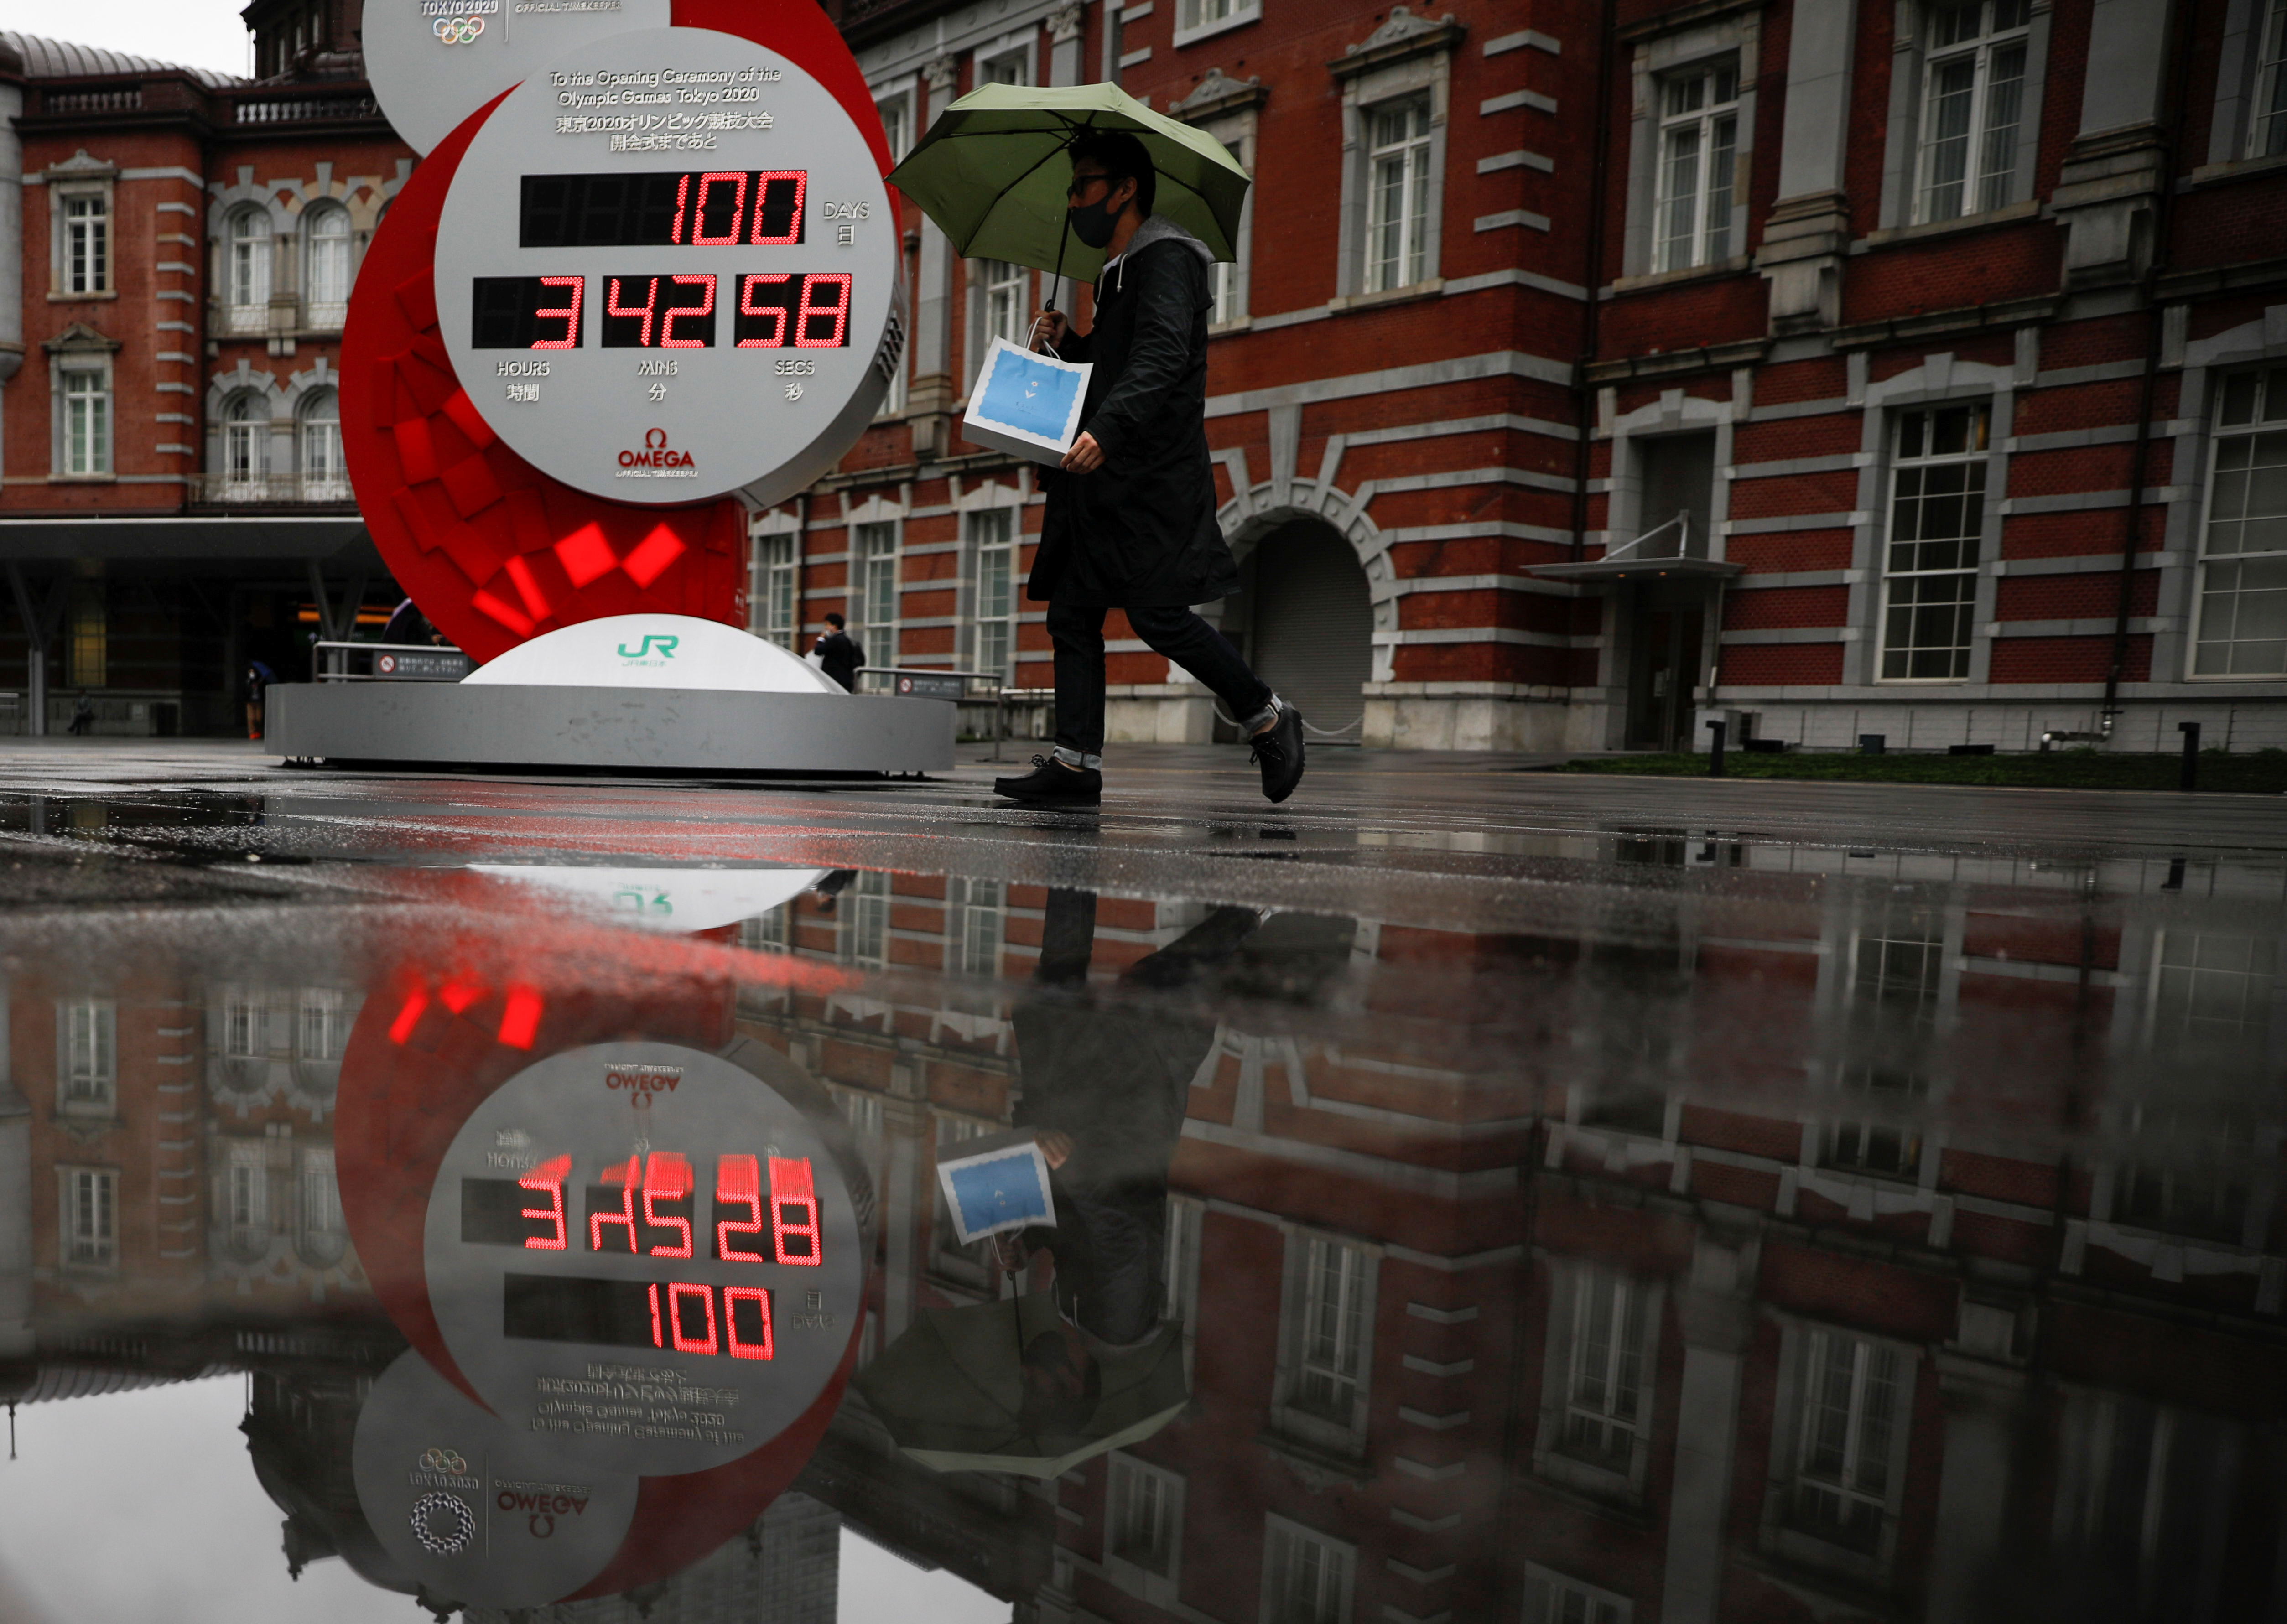 A countdown clock showing that 100 days are left until Tokyo 2020 Olympic Games that have been postponed to 2021 due to the coronavirus disease (COVID-19) pandemic is reflected in a puddle in Tokyo, Japan April 14, 2021.   REUTERS/Issei Kato